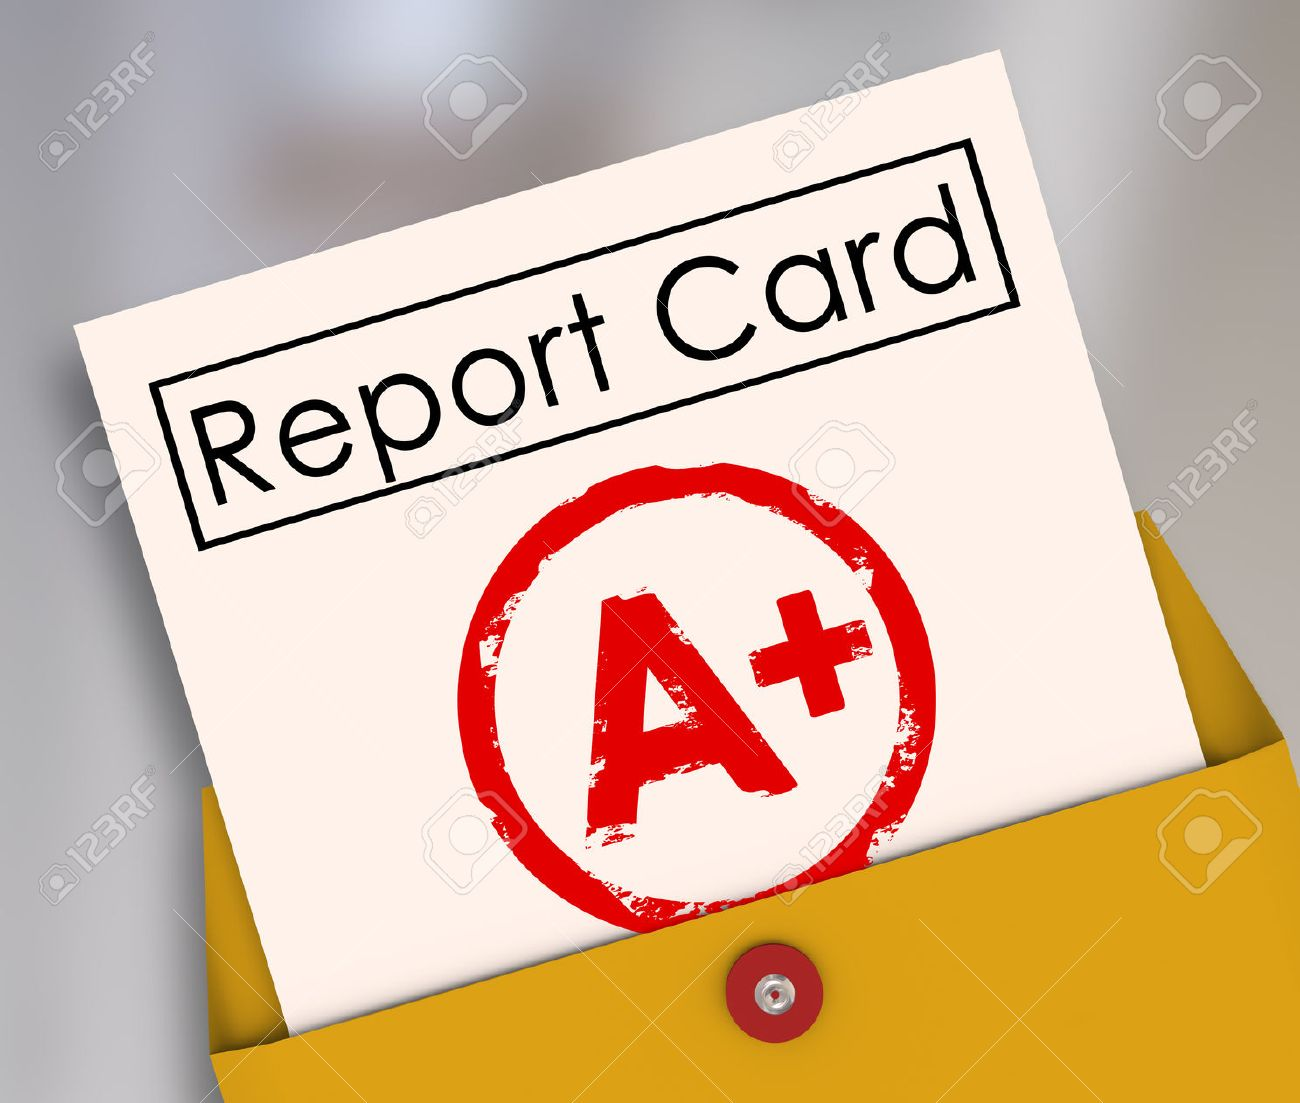 Image result for a+ report card images